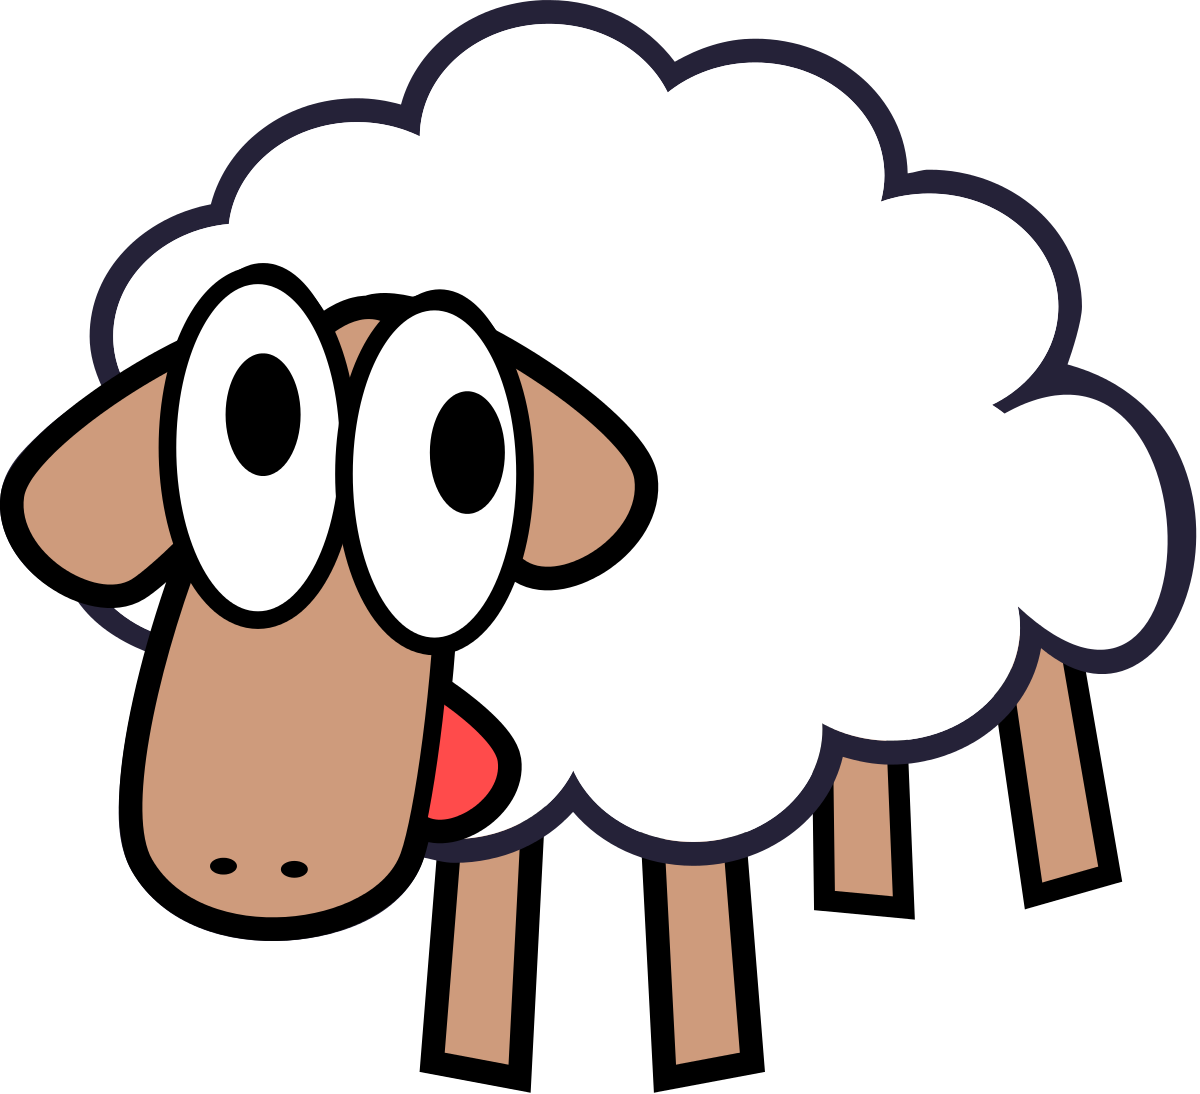 Sheep clipart #19, Download drawings